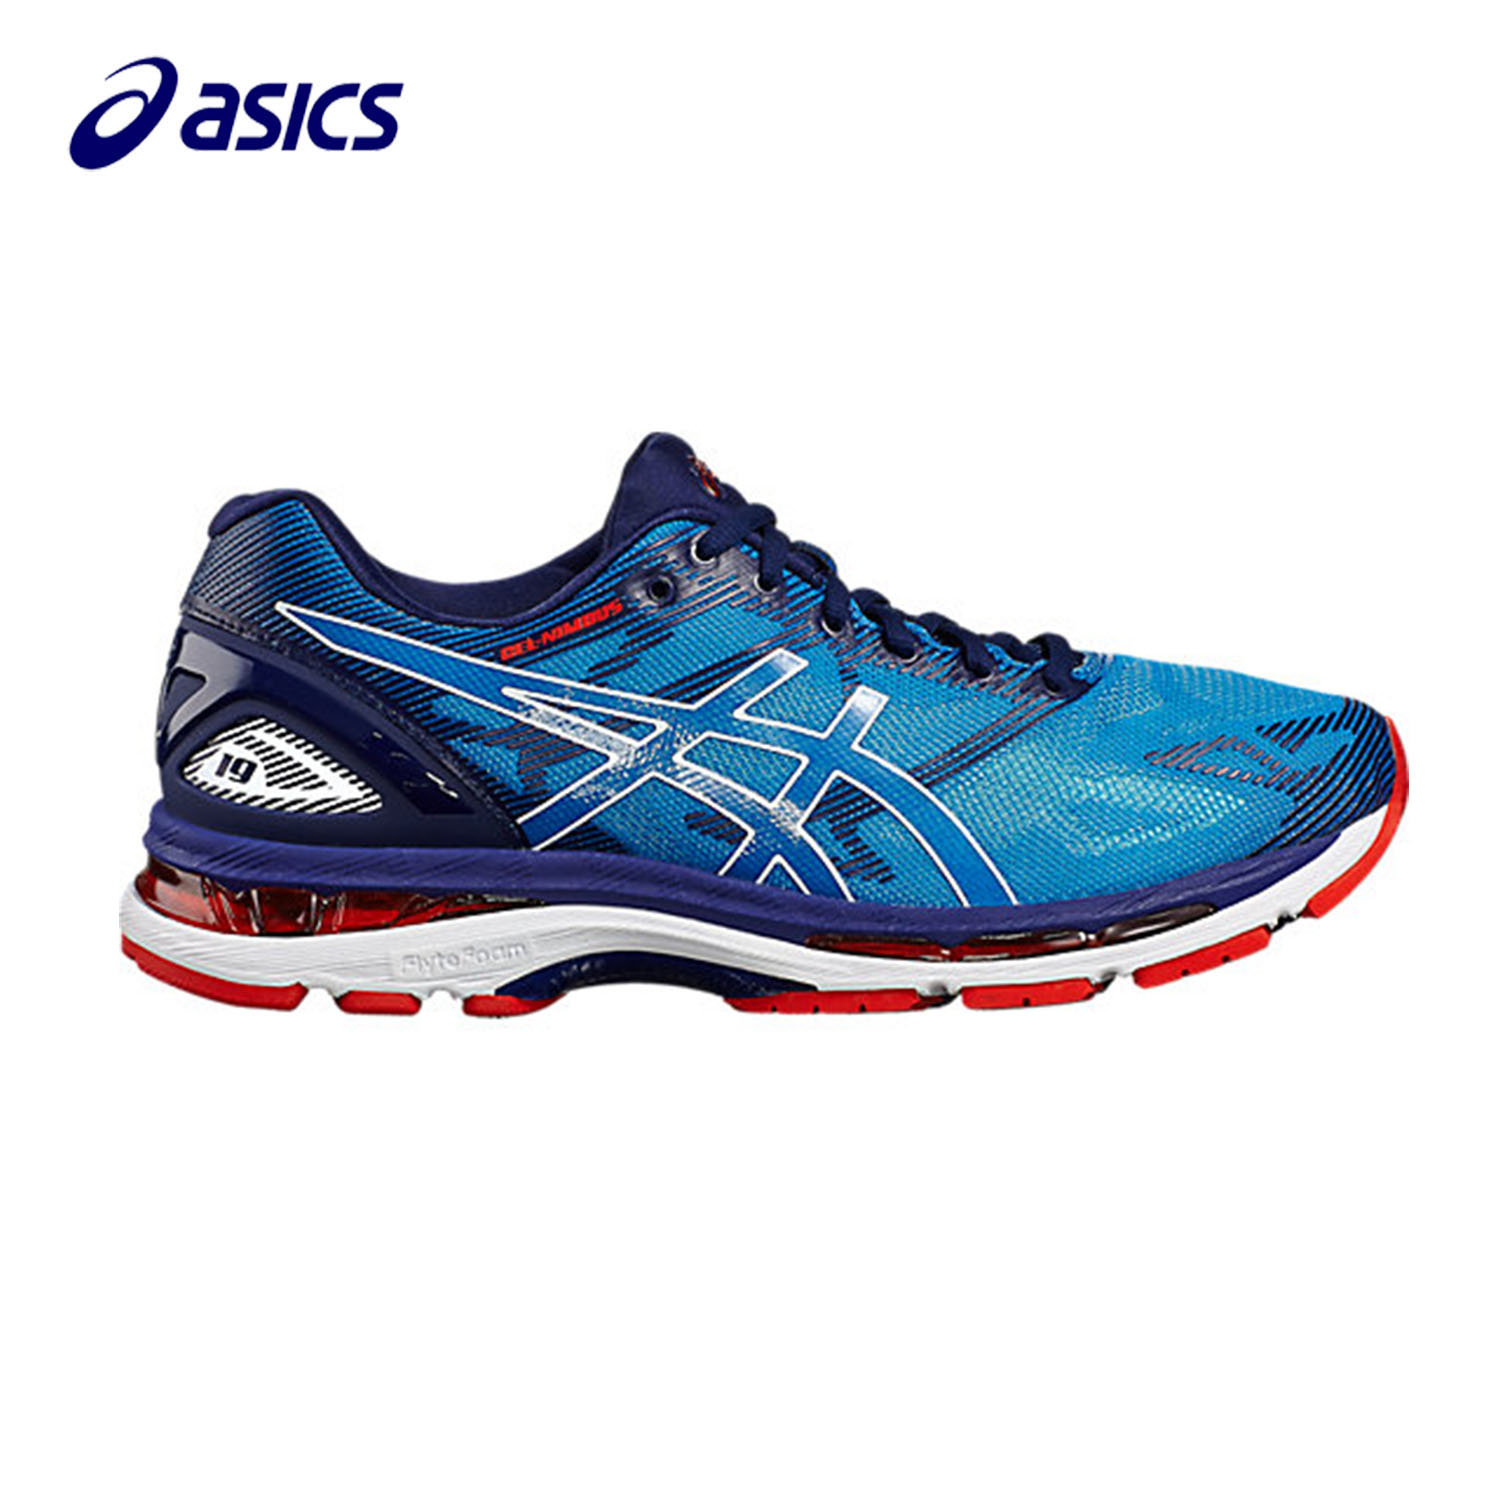 Orginal ASICS new running shoes men's Breathable buffer Shoes Classic Outdoor Tennis Shoes  Leisure Non-slip T7A3N-1690 kelme 2016 new children sport running shoes football boots synthetic leather broken nail kids skid wearable shoes breathable 49